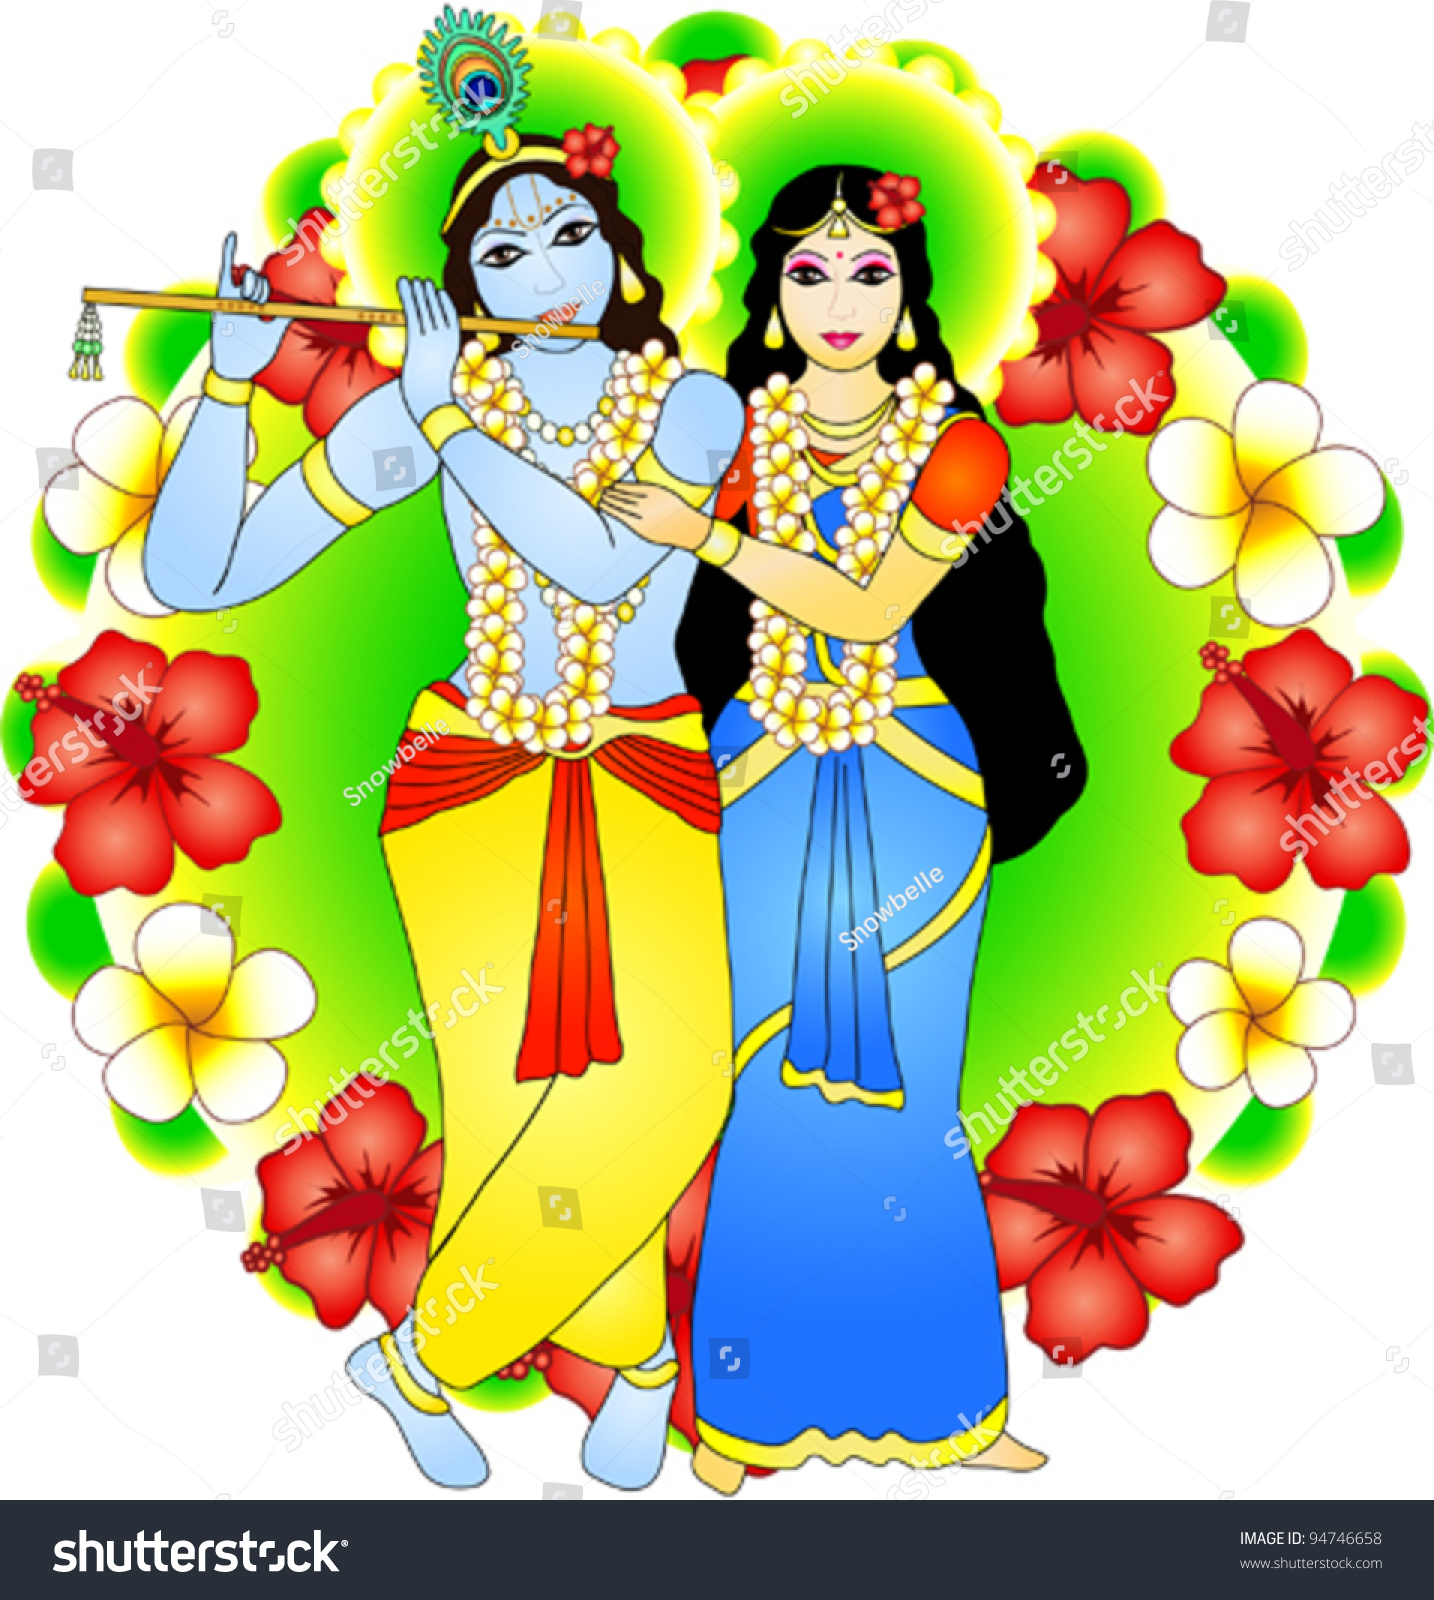 Famous Radha Krishna Tapestry Murals Photo Gallery for free download